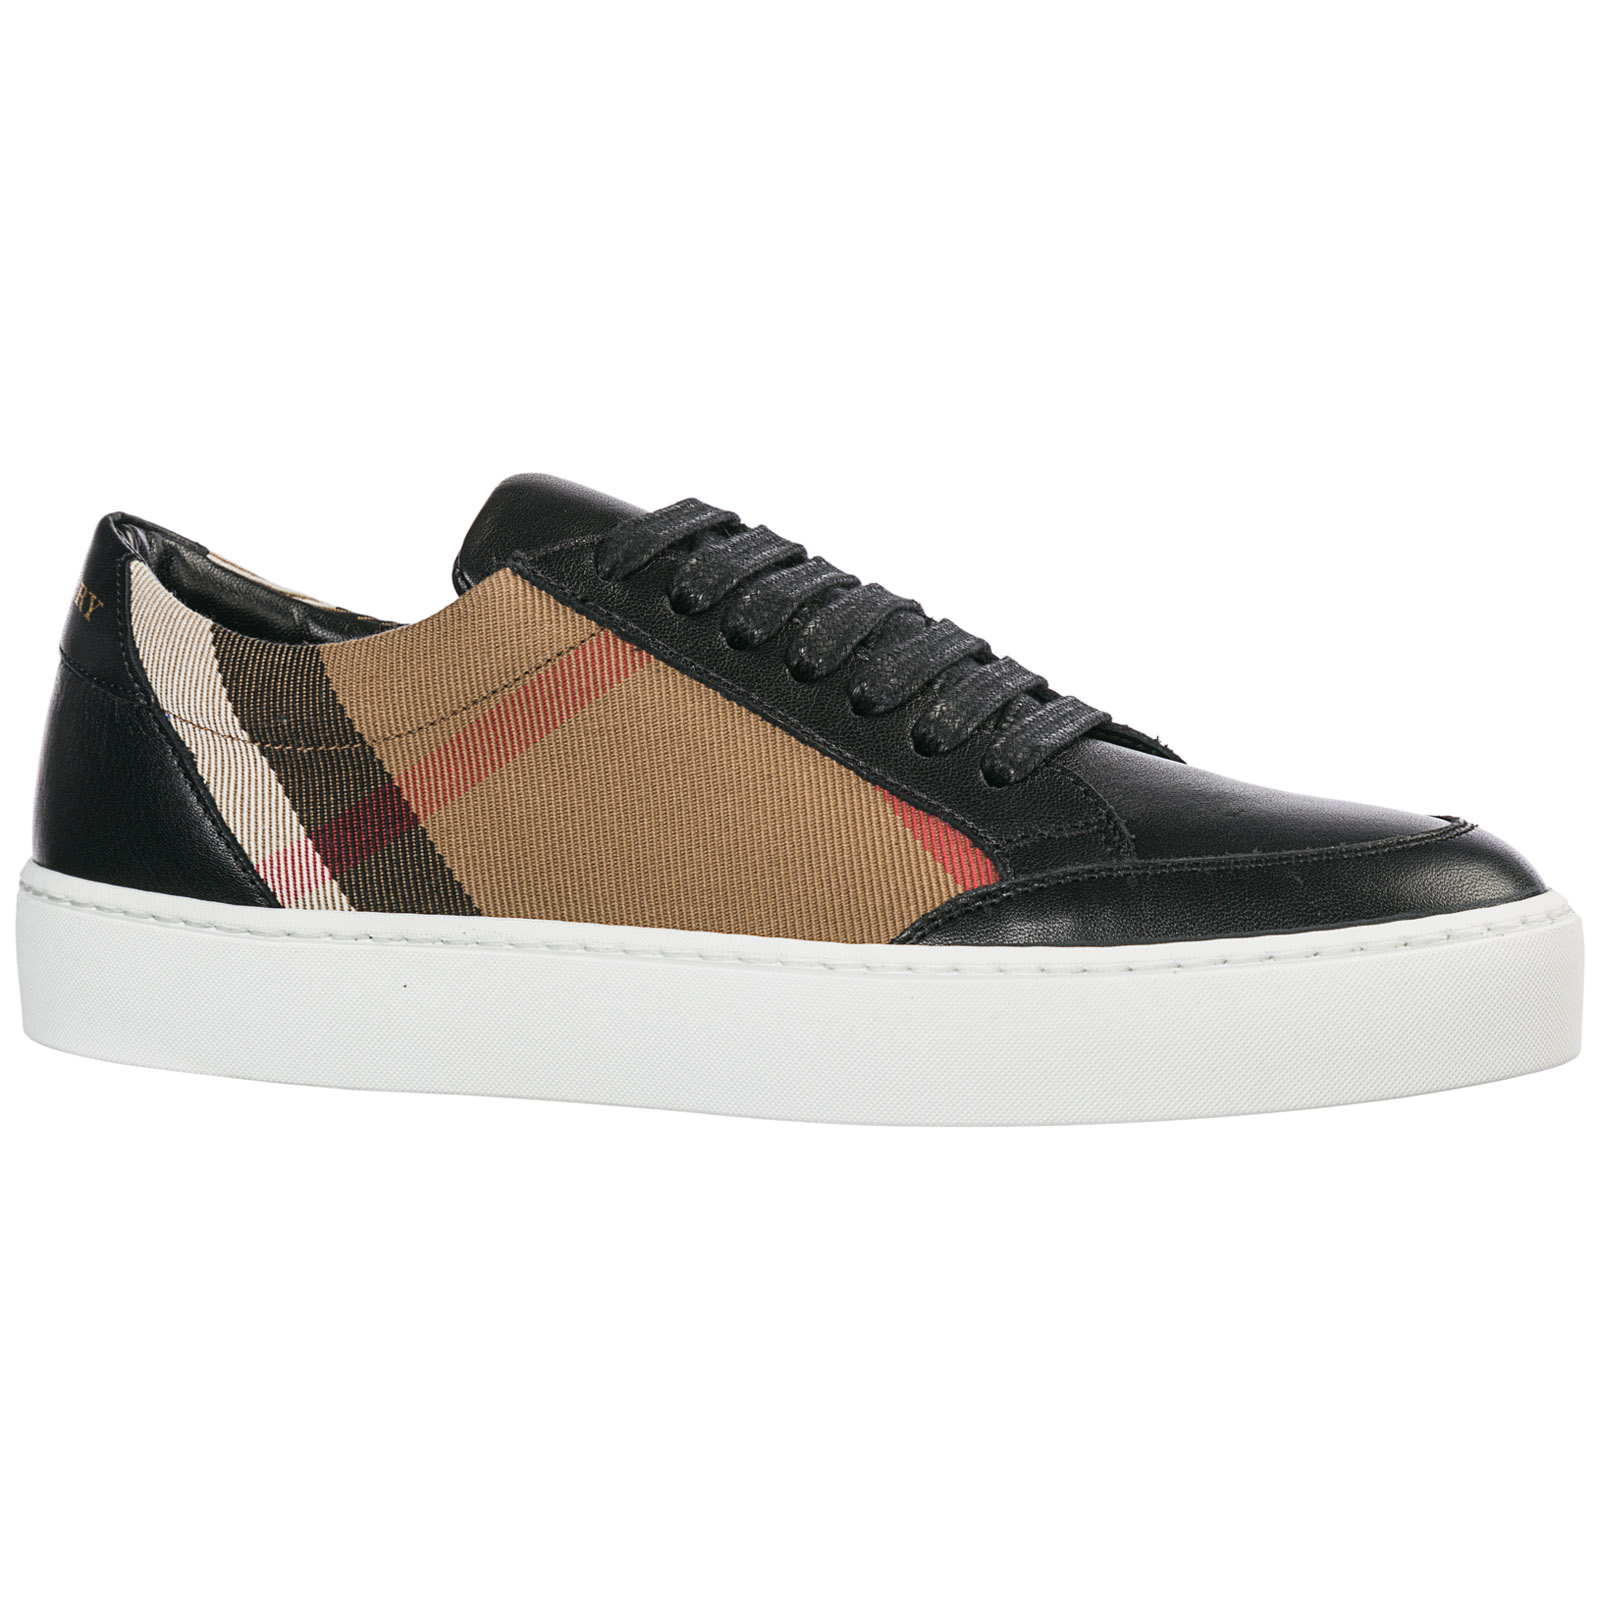 Nero Burberry Sneakers Burberry 40400561 Salmond Sneakers xH6qw4n6X